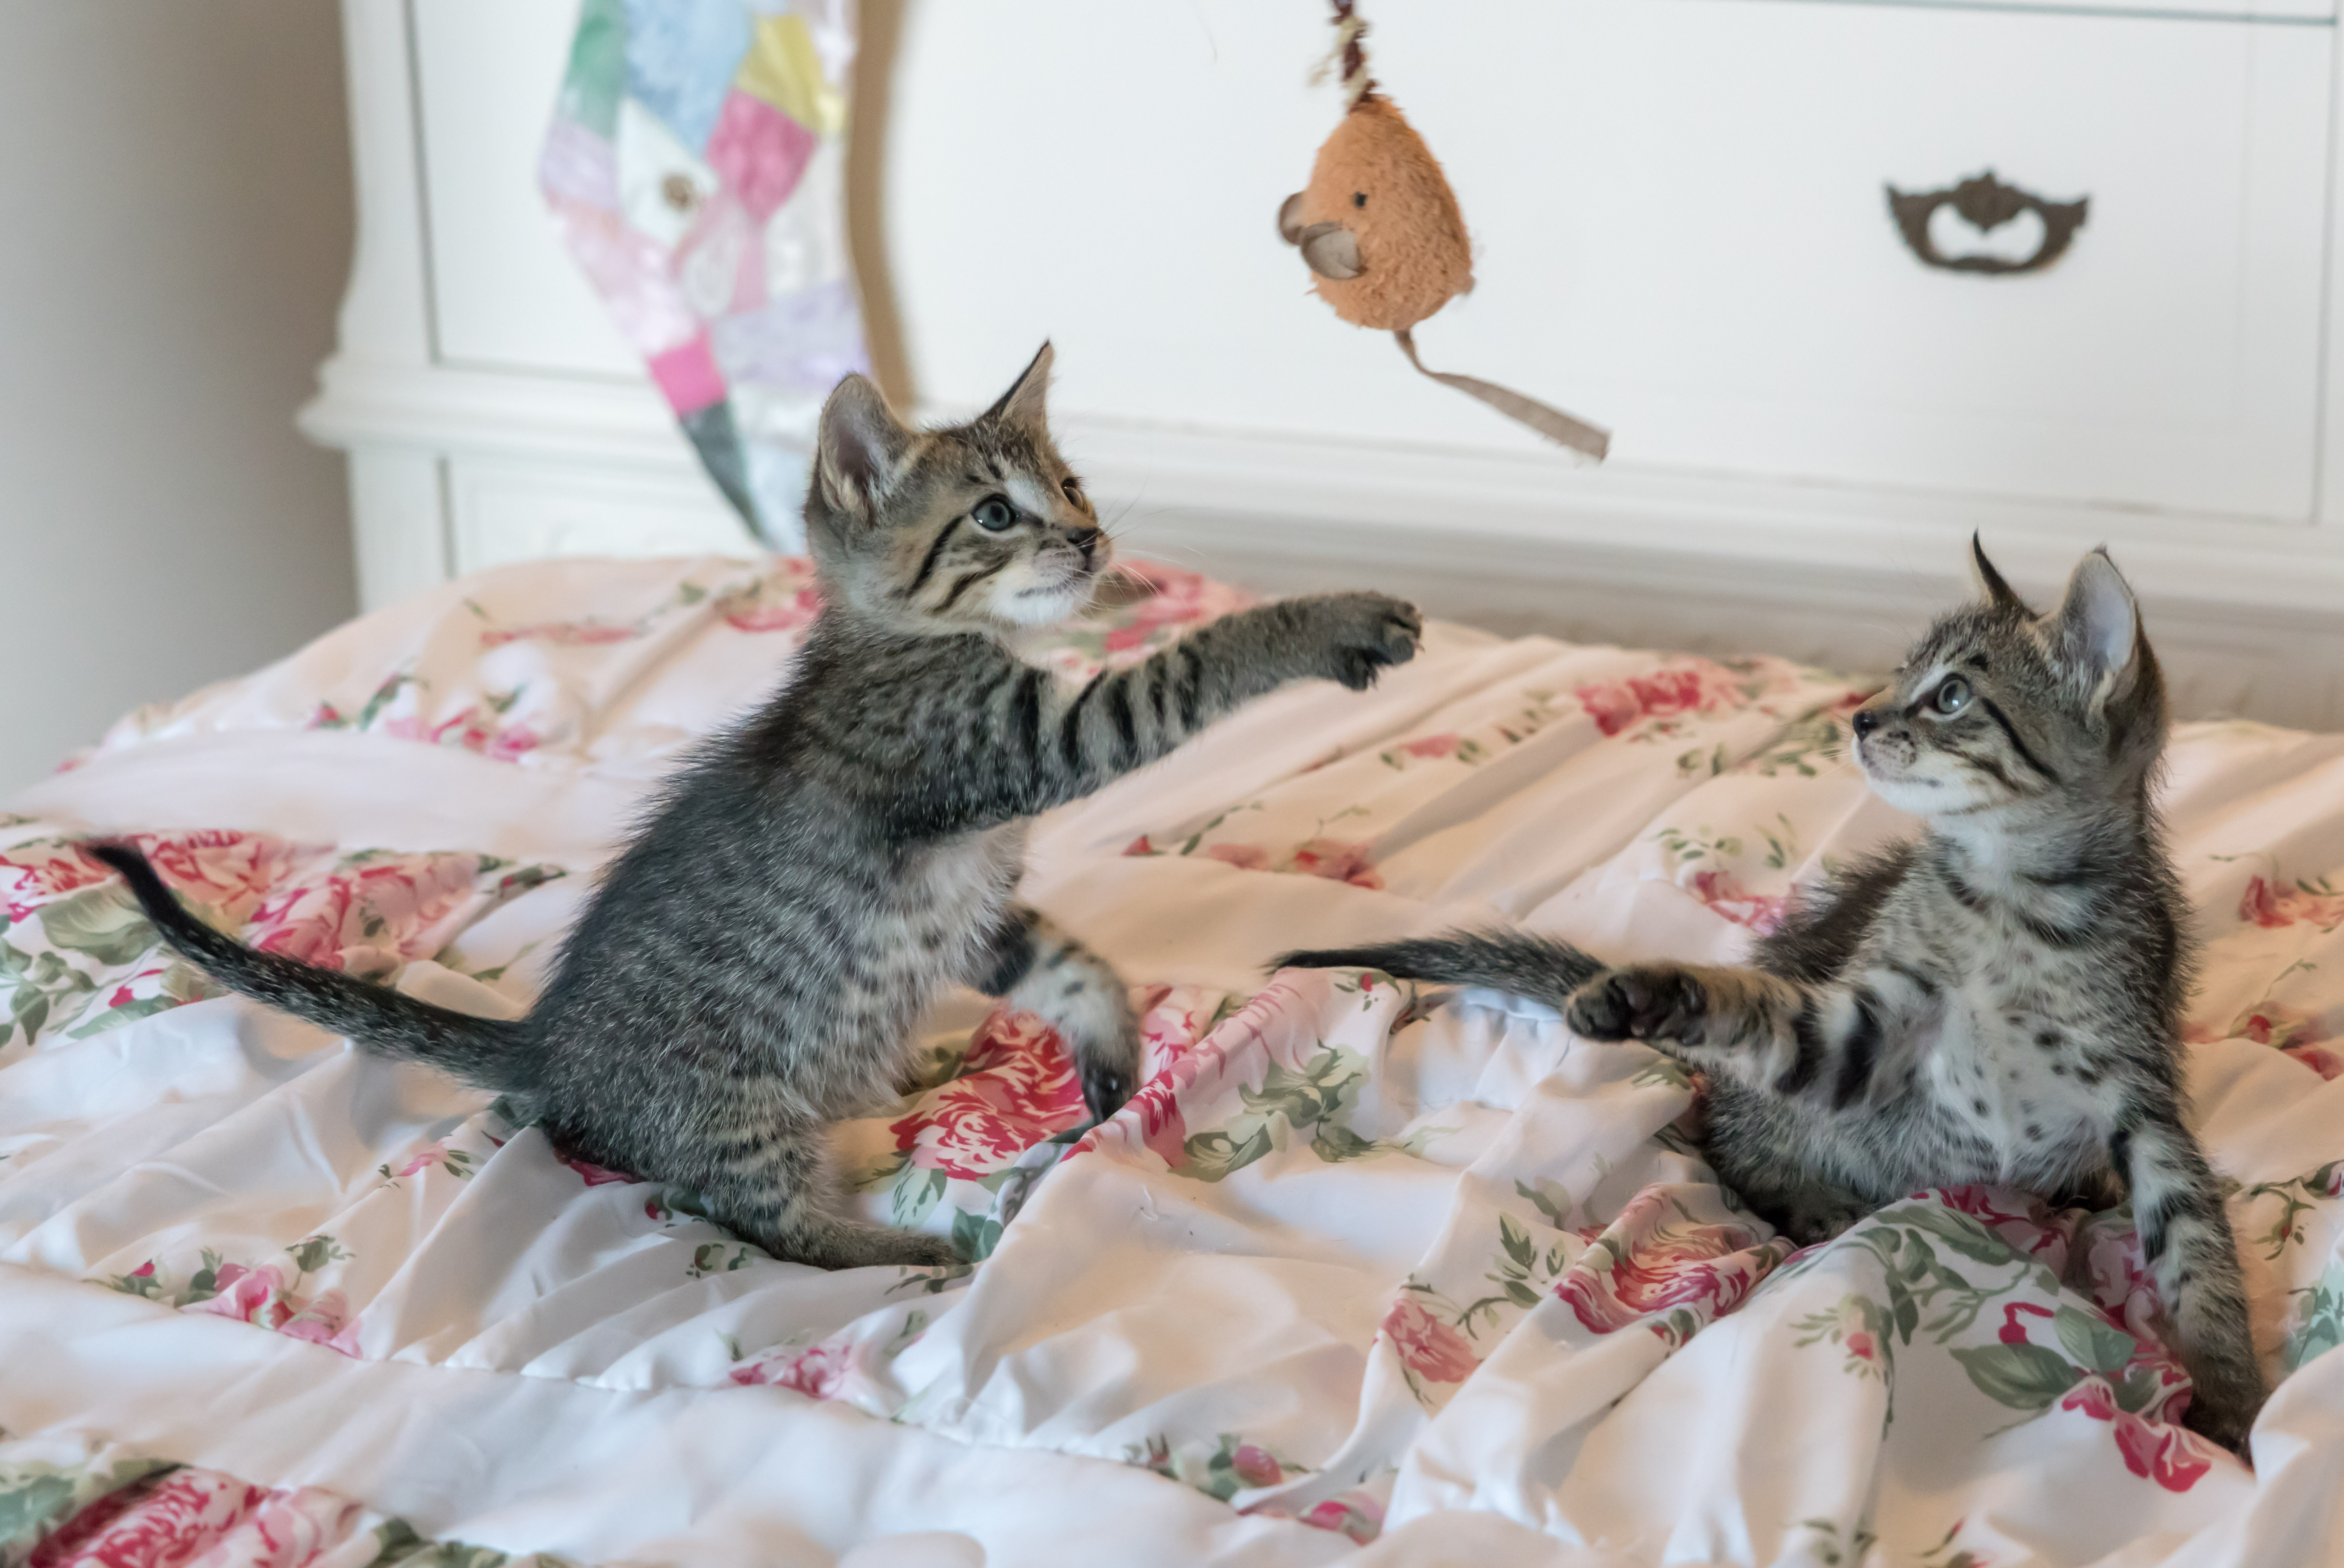 Tabby Kittens on Floral Comforter, Mammal, Kitty, Gray, Pet, HQ Photo